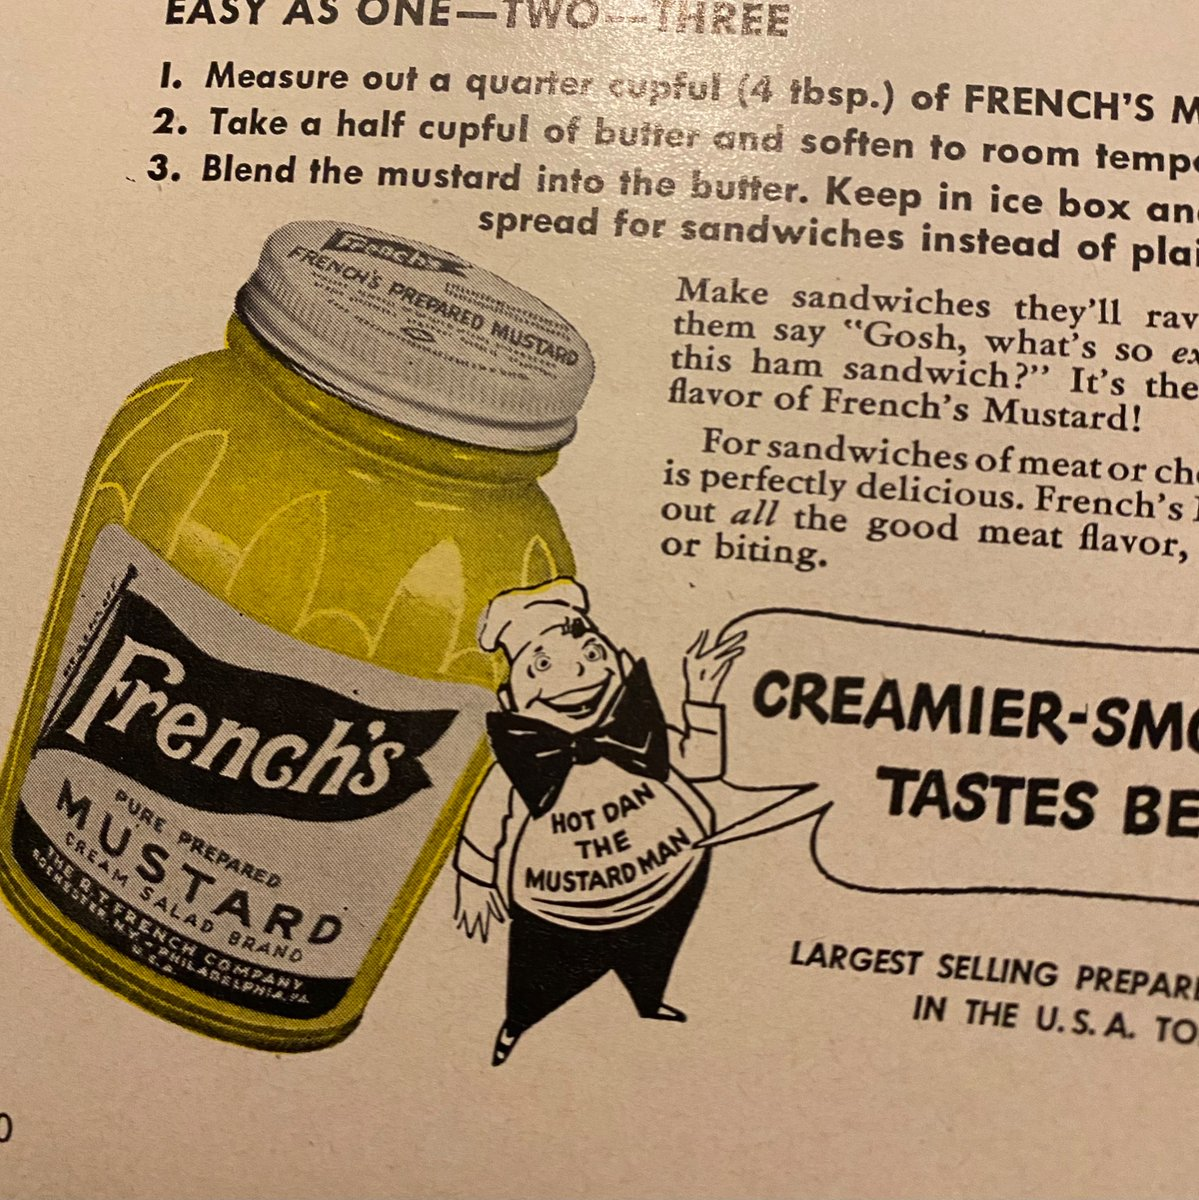 looking through magazines from 1942 and between all the crippling anxiety over ww2 and the blatant racism i found hot dan the mustard man